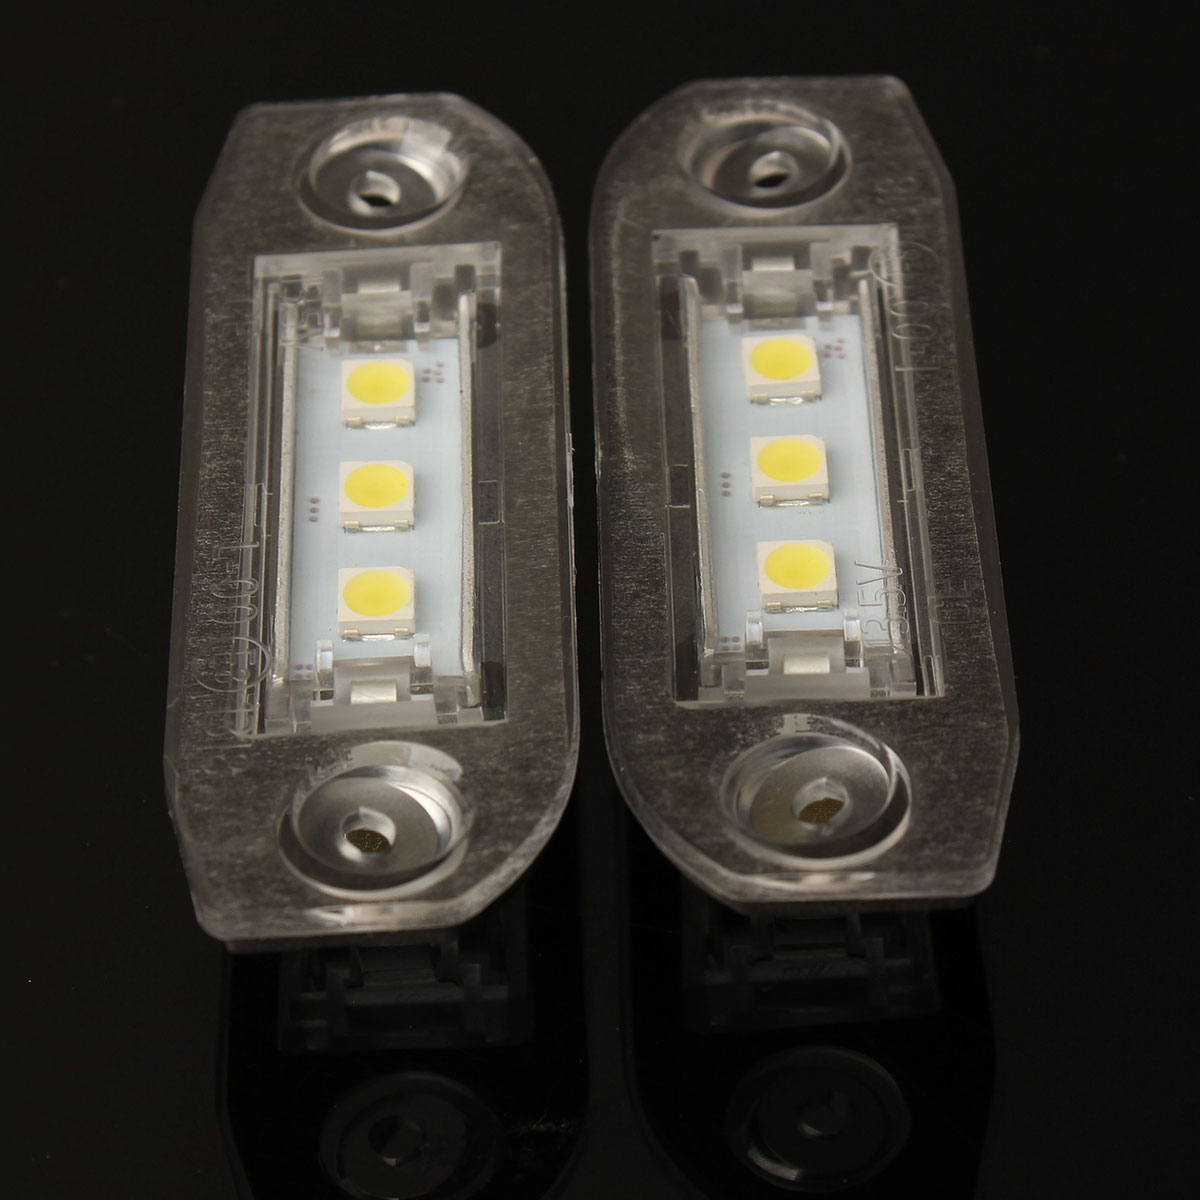 Audew 2x 3 LED White Number License Plate Light Lamp For SMD Luce Targa Volvo S80 S60 C70 V70 E-marked<br><br>Aliexpress